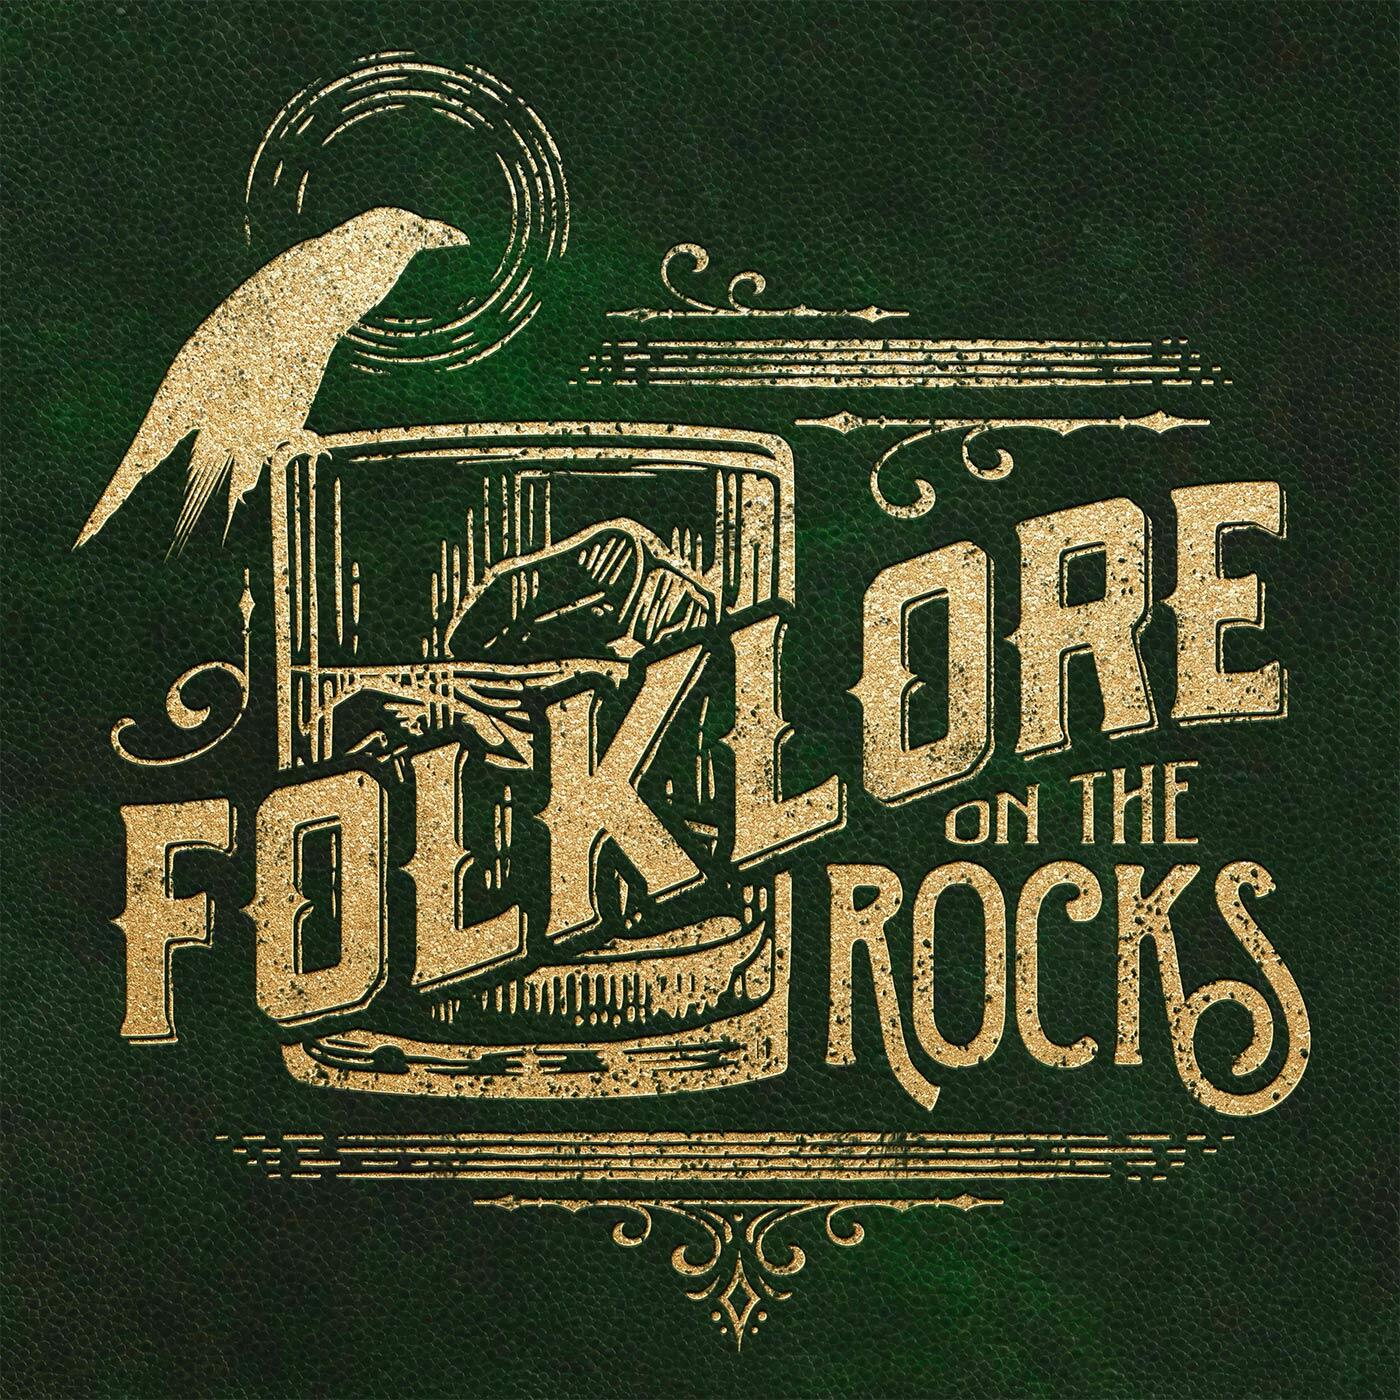 Listen Free to Folklore on the Rocks on iHeartRadio Podcasts   iHeartRadio